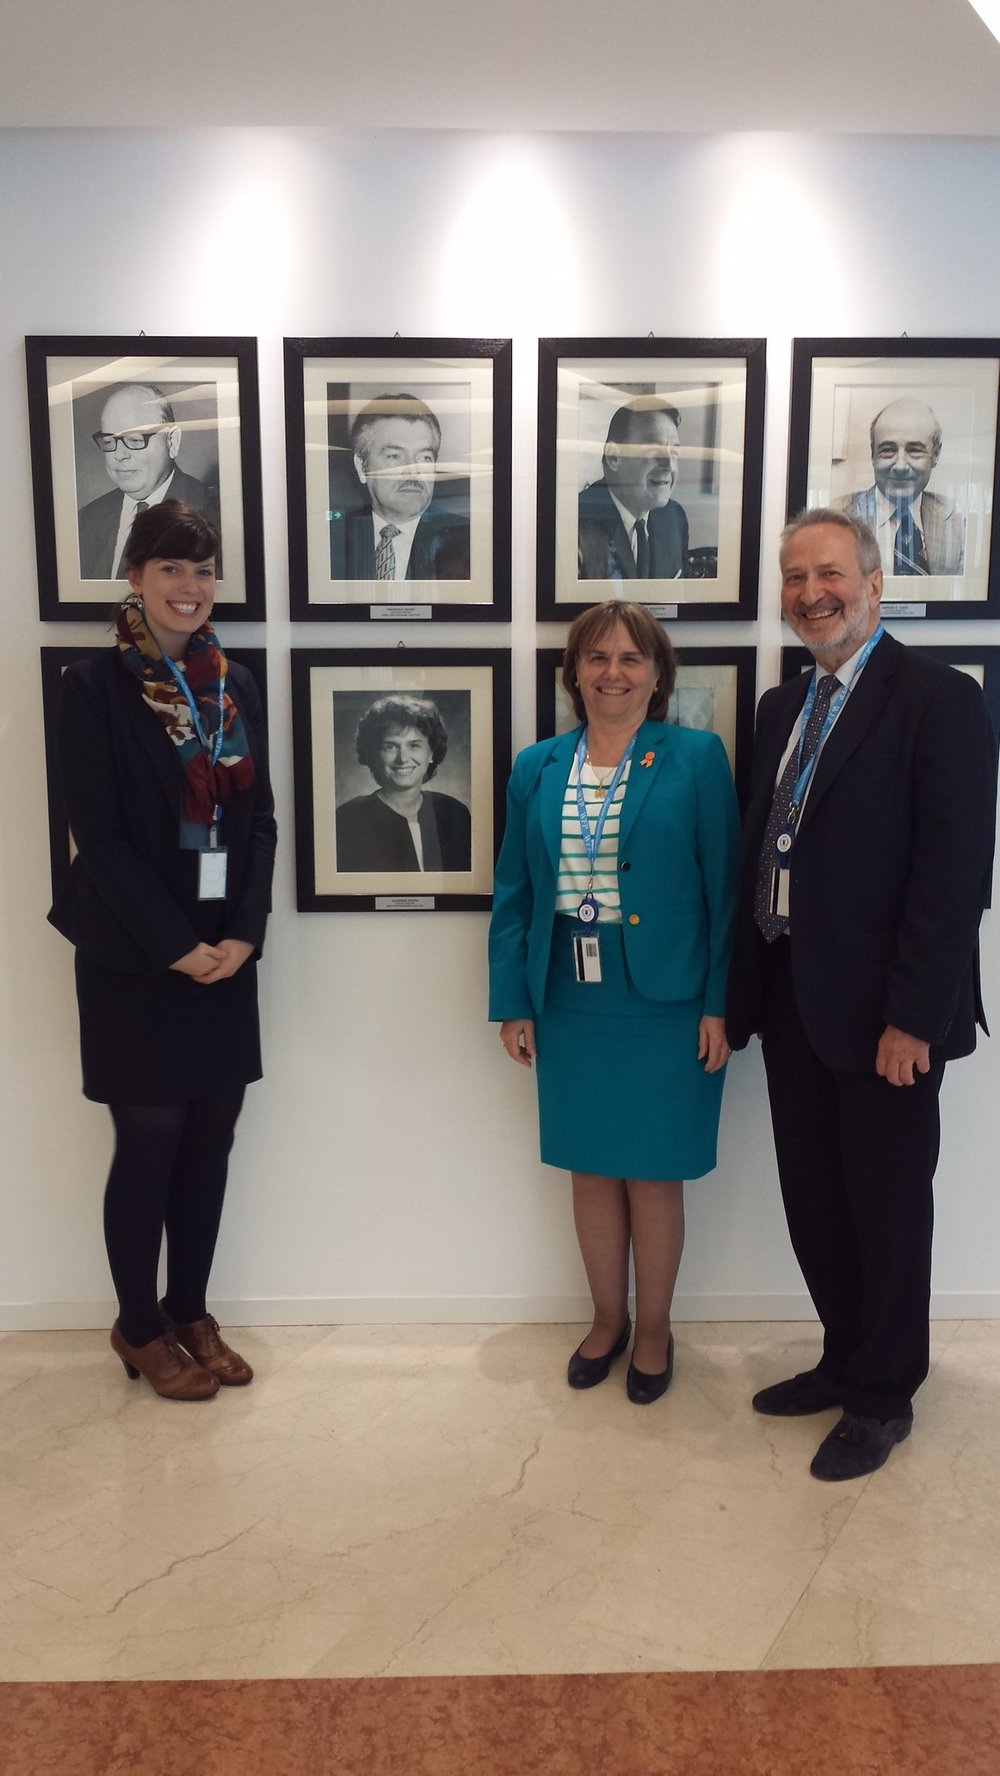 In a 2015 visit to Rome, Catherine Bertini posed for a photo next to the gallery of executive directors. She is joined in this photo by Emily Fredenberg, WFP Lebanon, and Werner Schleiffer, retired WFP staff member and current director of the Syracuse University Geneva Summer Program.